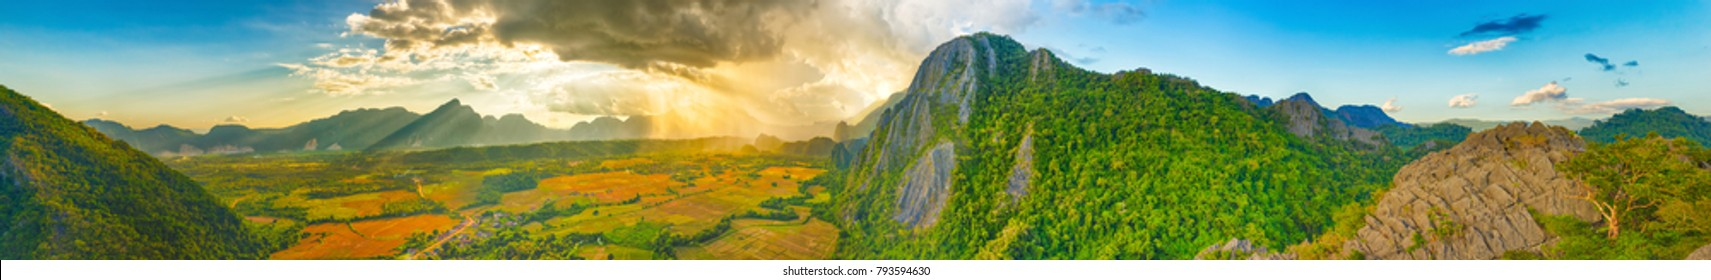 Aerial view of the fields and mountain. Beautiful landscape panorama. Vang Vieng. Laos.